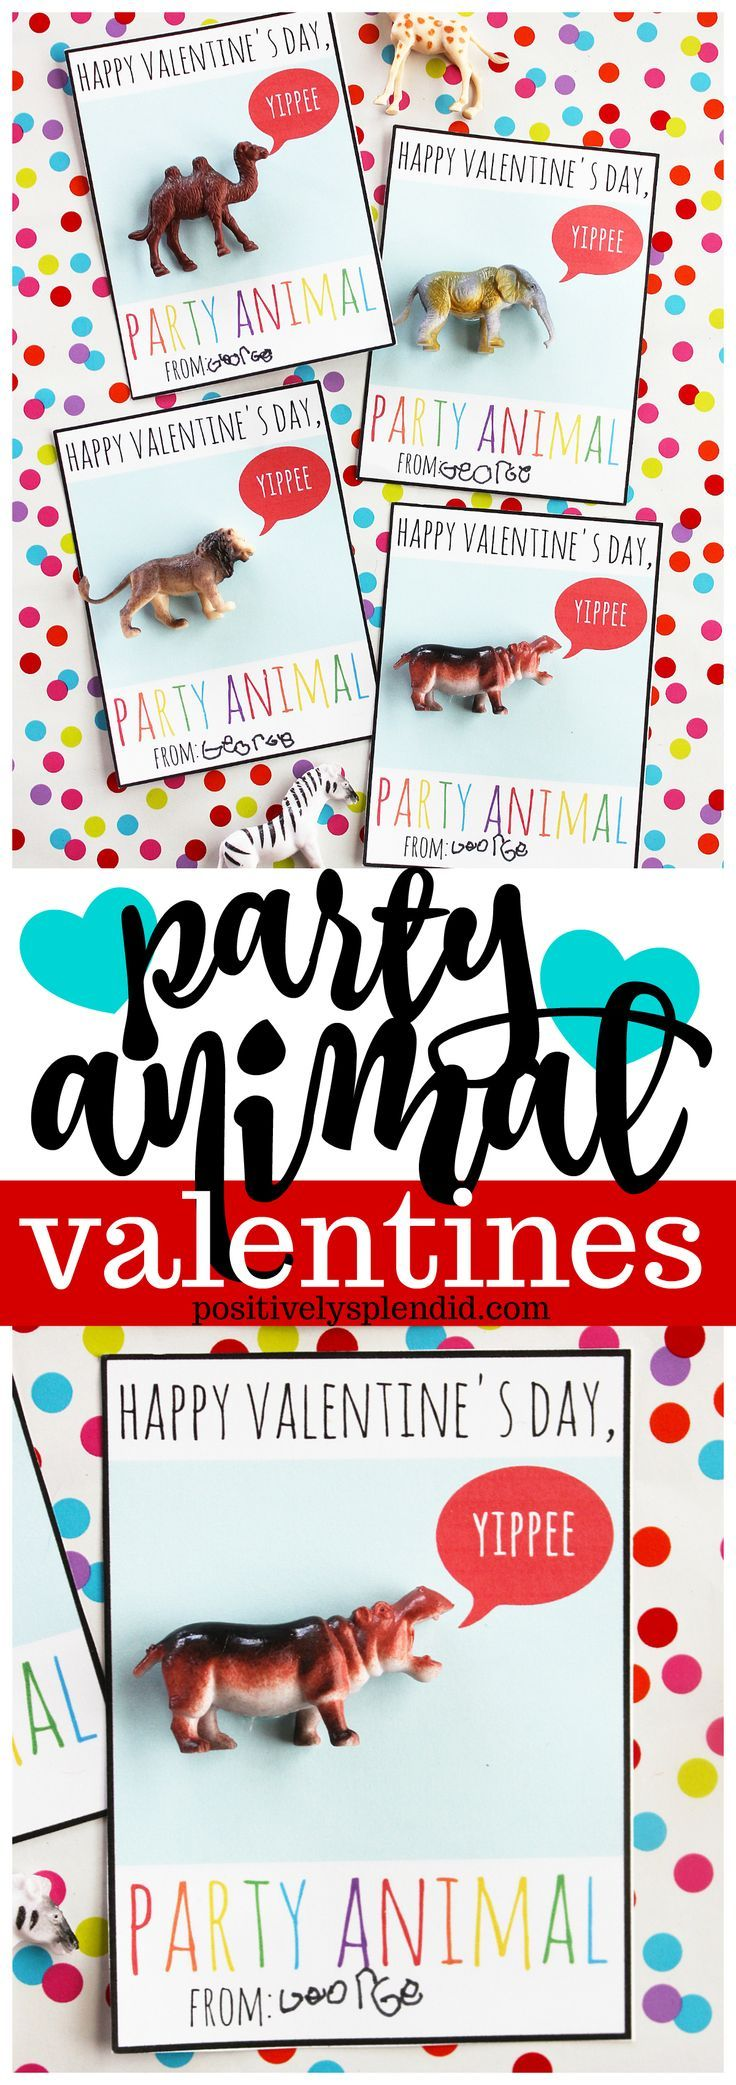 Party Animal Printable Valentines - Fun candy-free handmade valentine cards forkids!#valentinecard#kidsvalentinecard#valentineprintable #valentinesday